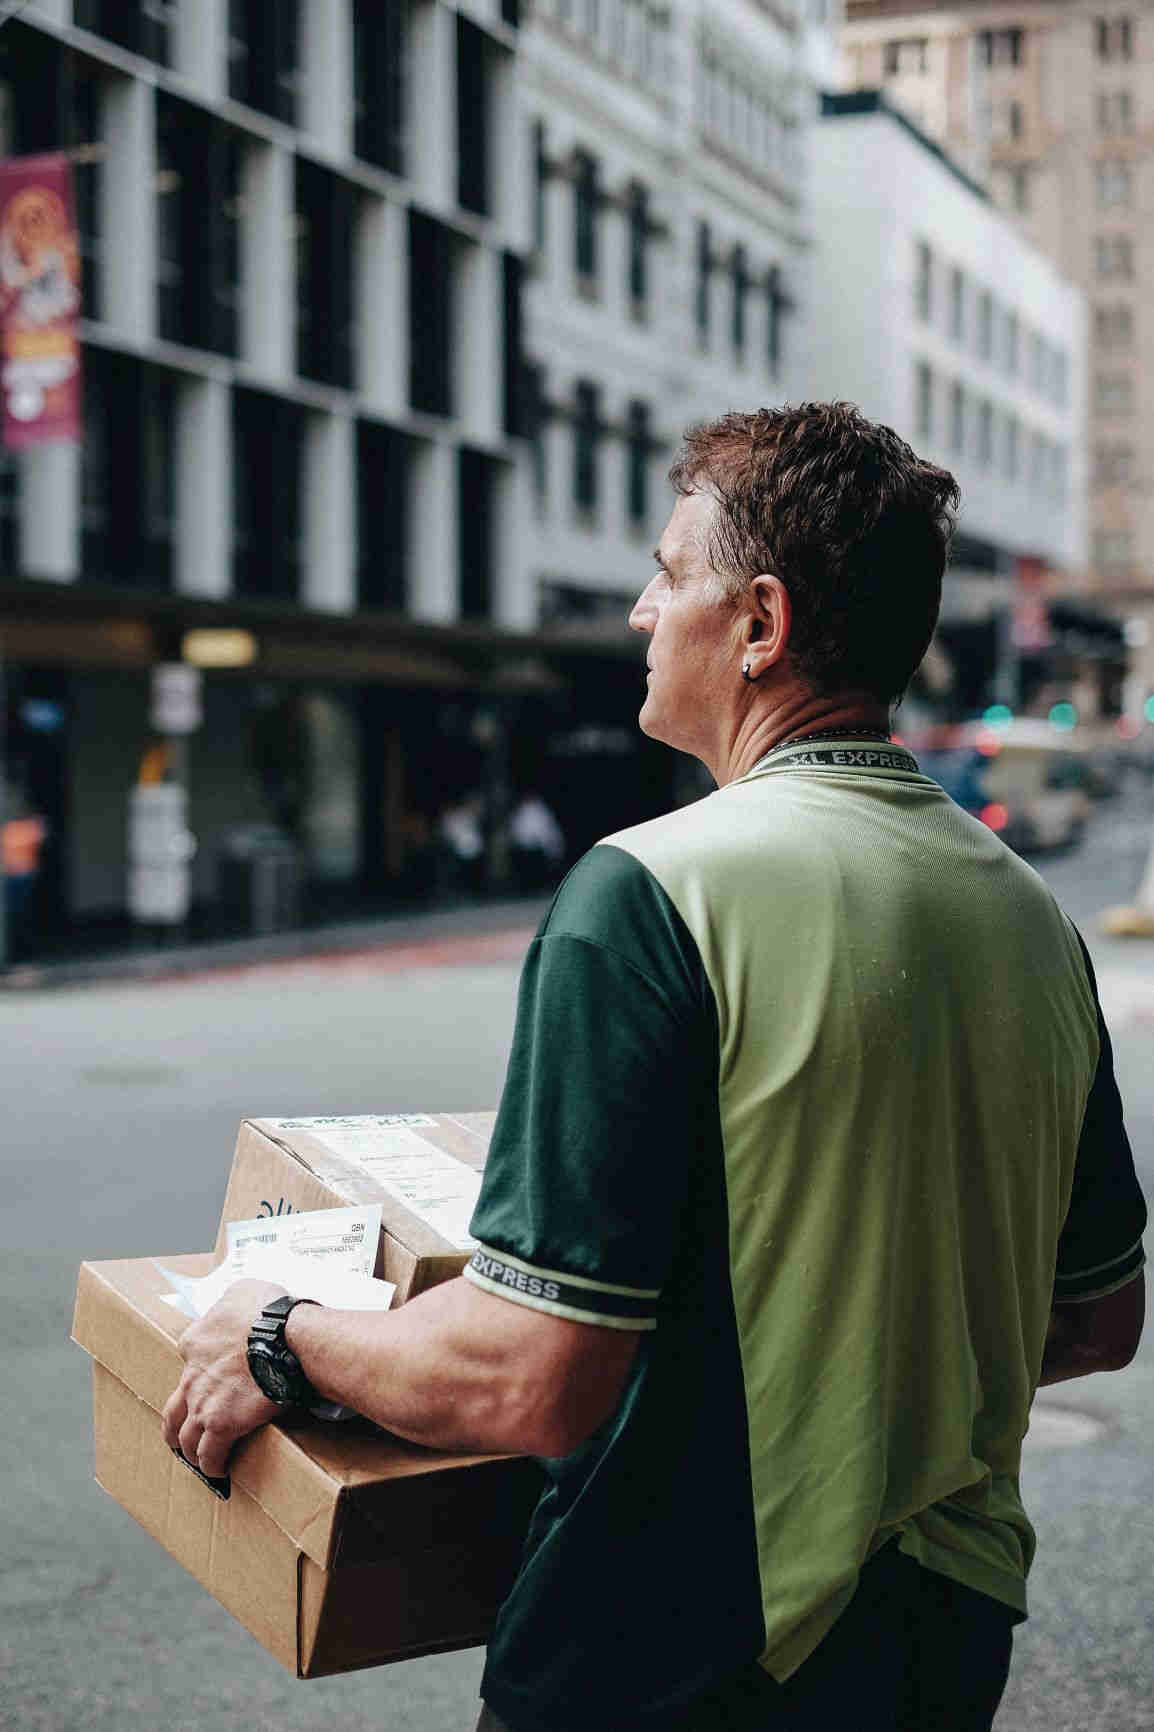 Intercom helps communication with delivery people